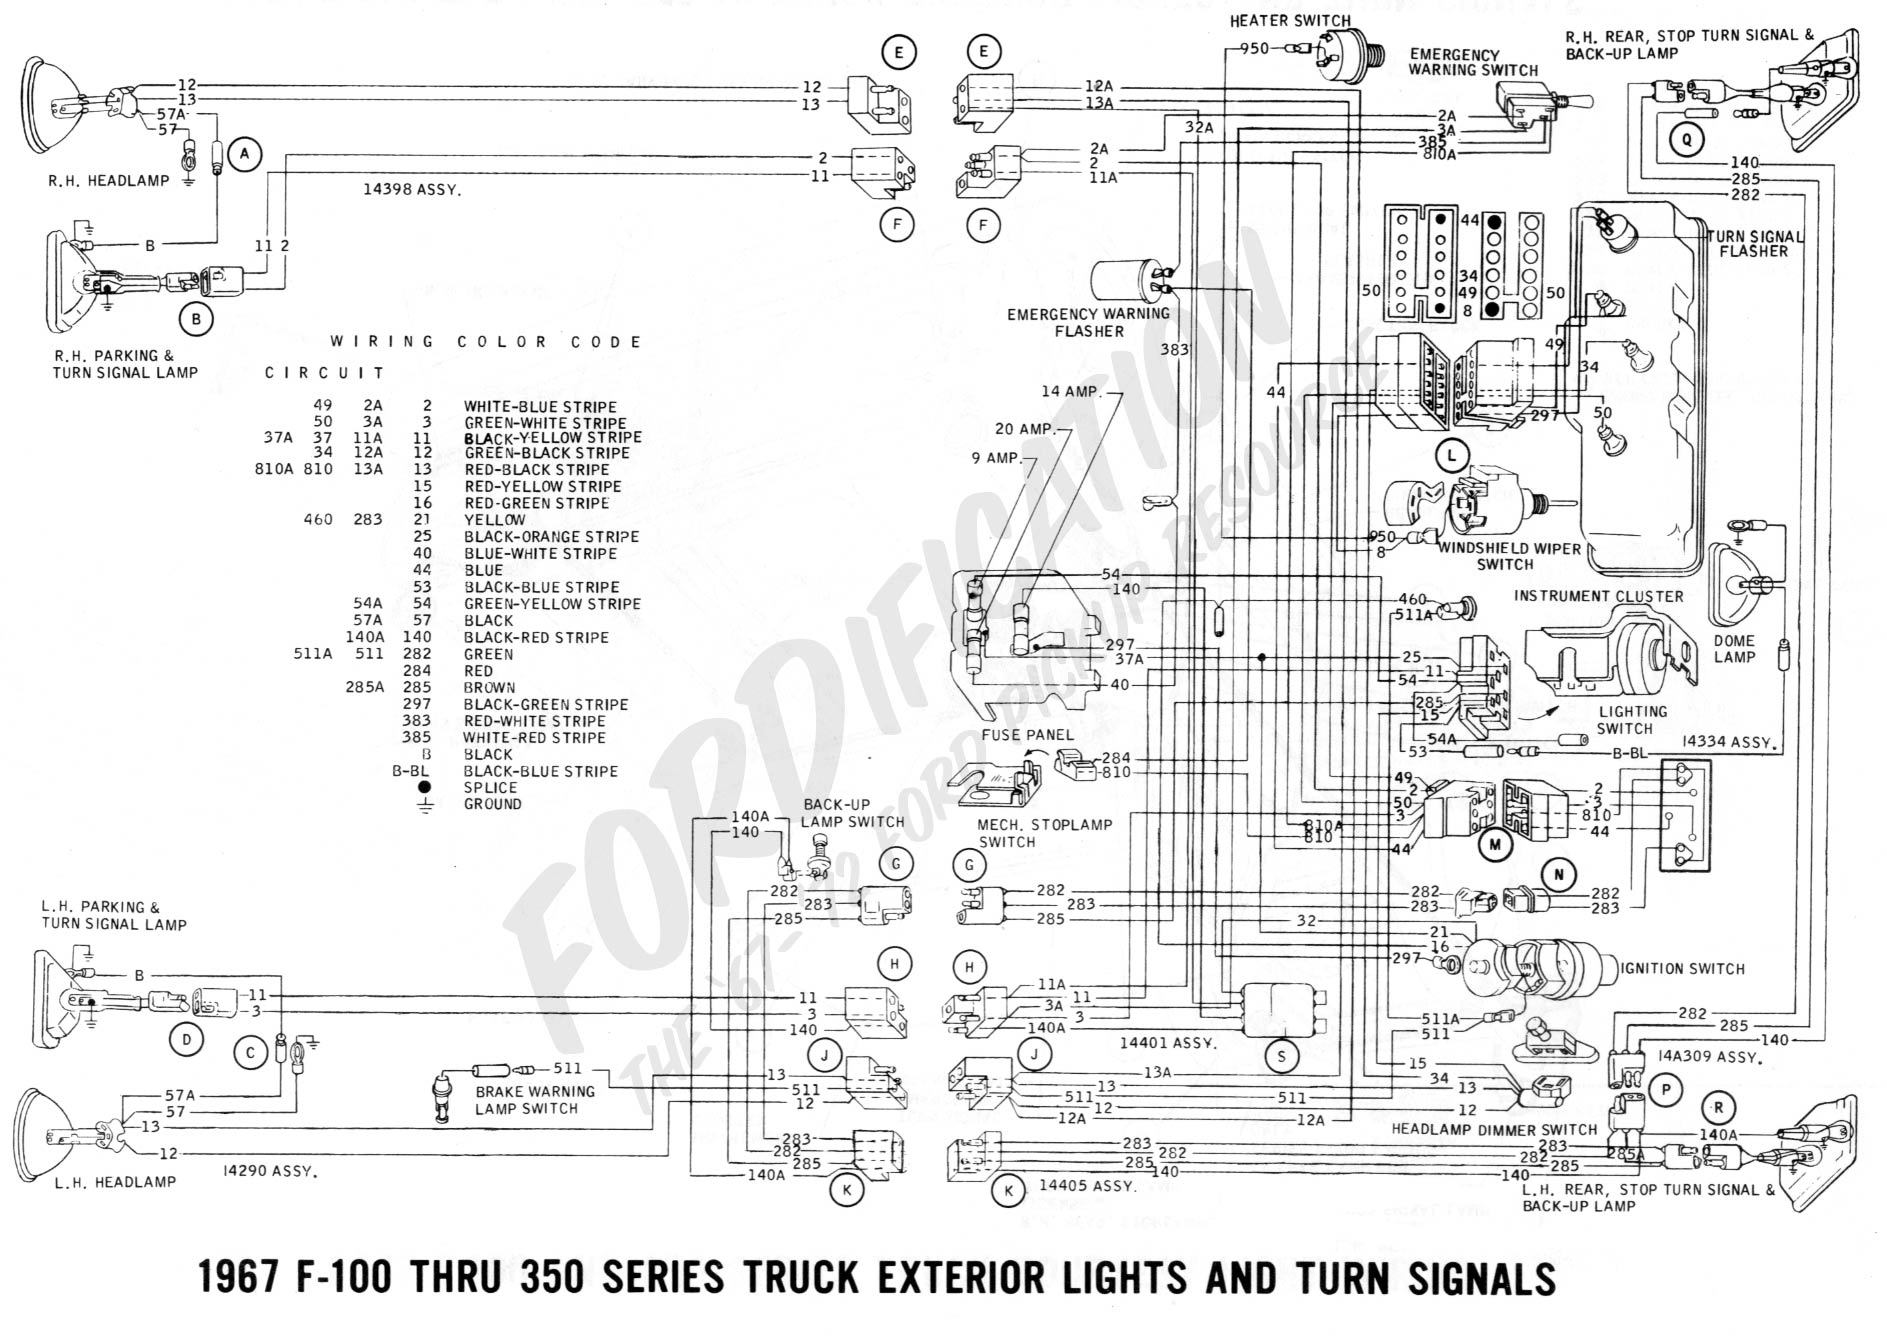 80 1967_exterior_lights_and_turn_signals_page_2_1db6c529c4c9567560e56d6320f993290ba5b803 1967 mustang wiring diagram efcaviation com 1966 mustang wiring diagrams at creativeand.co